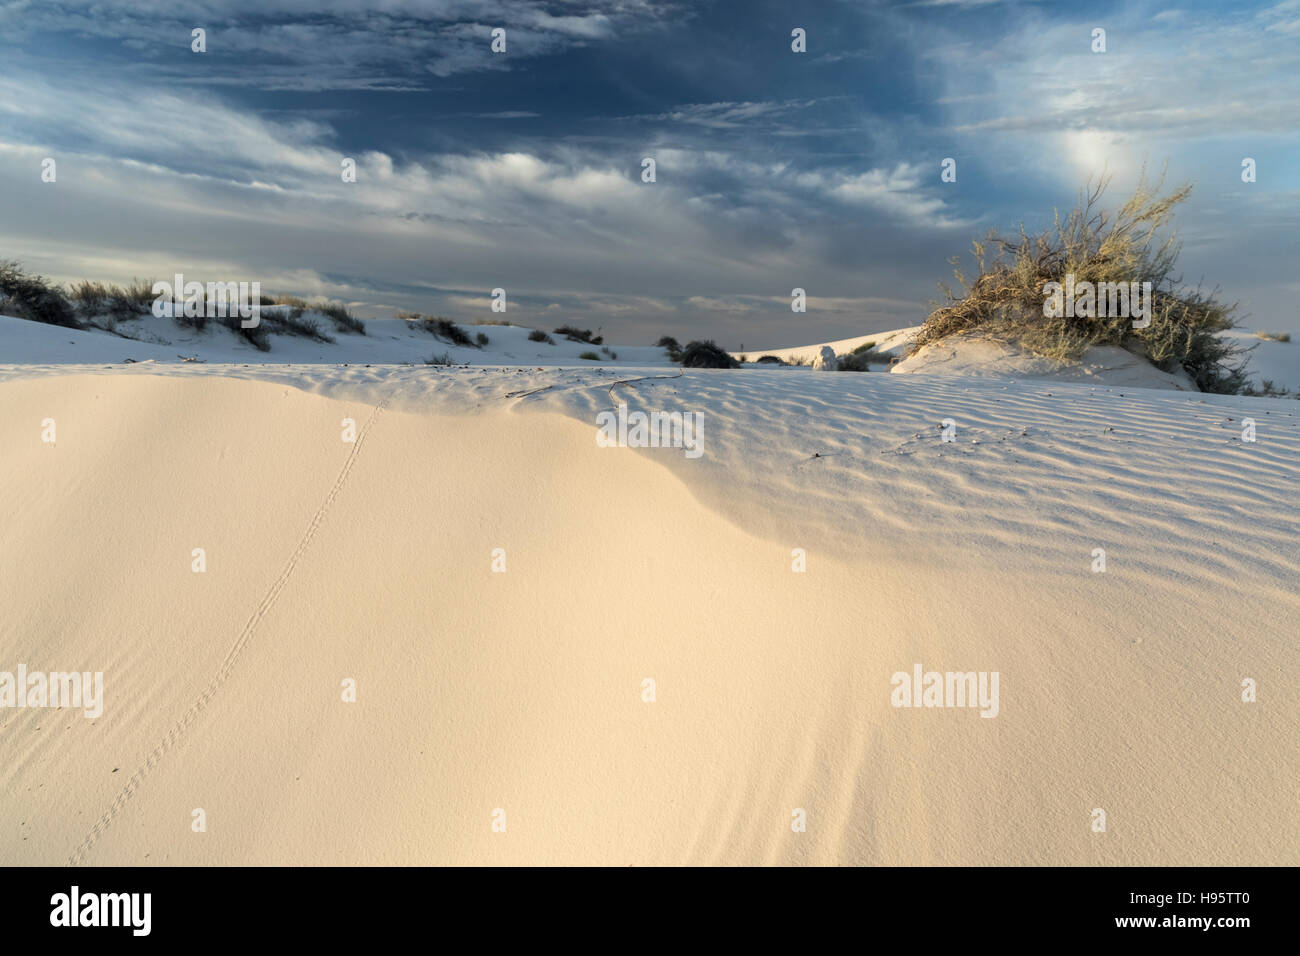 Sand dunes with animal track at White Sands National Monument near Alamogordo, New Mexico, USA - Stock Image